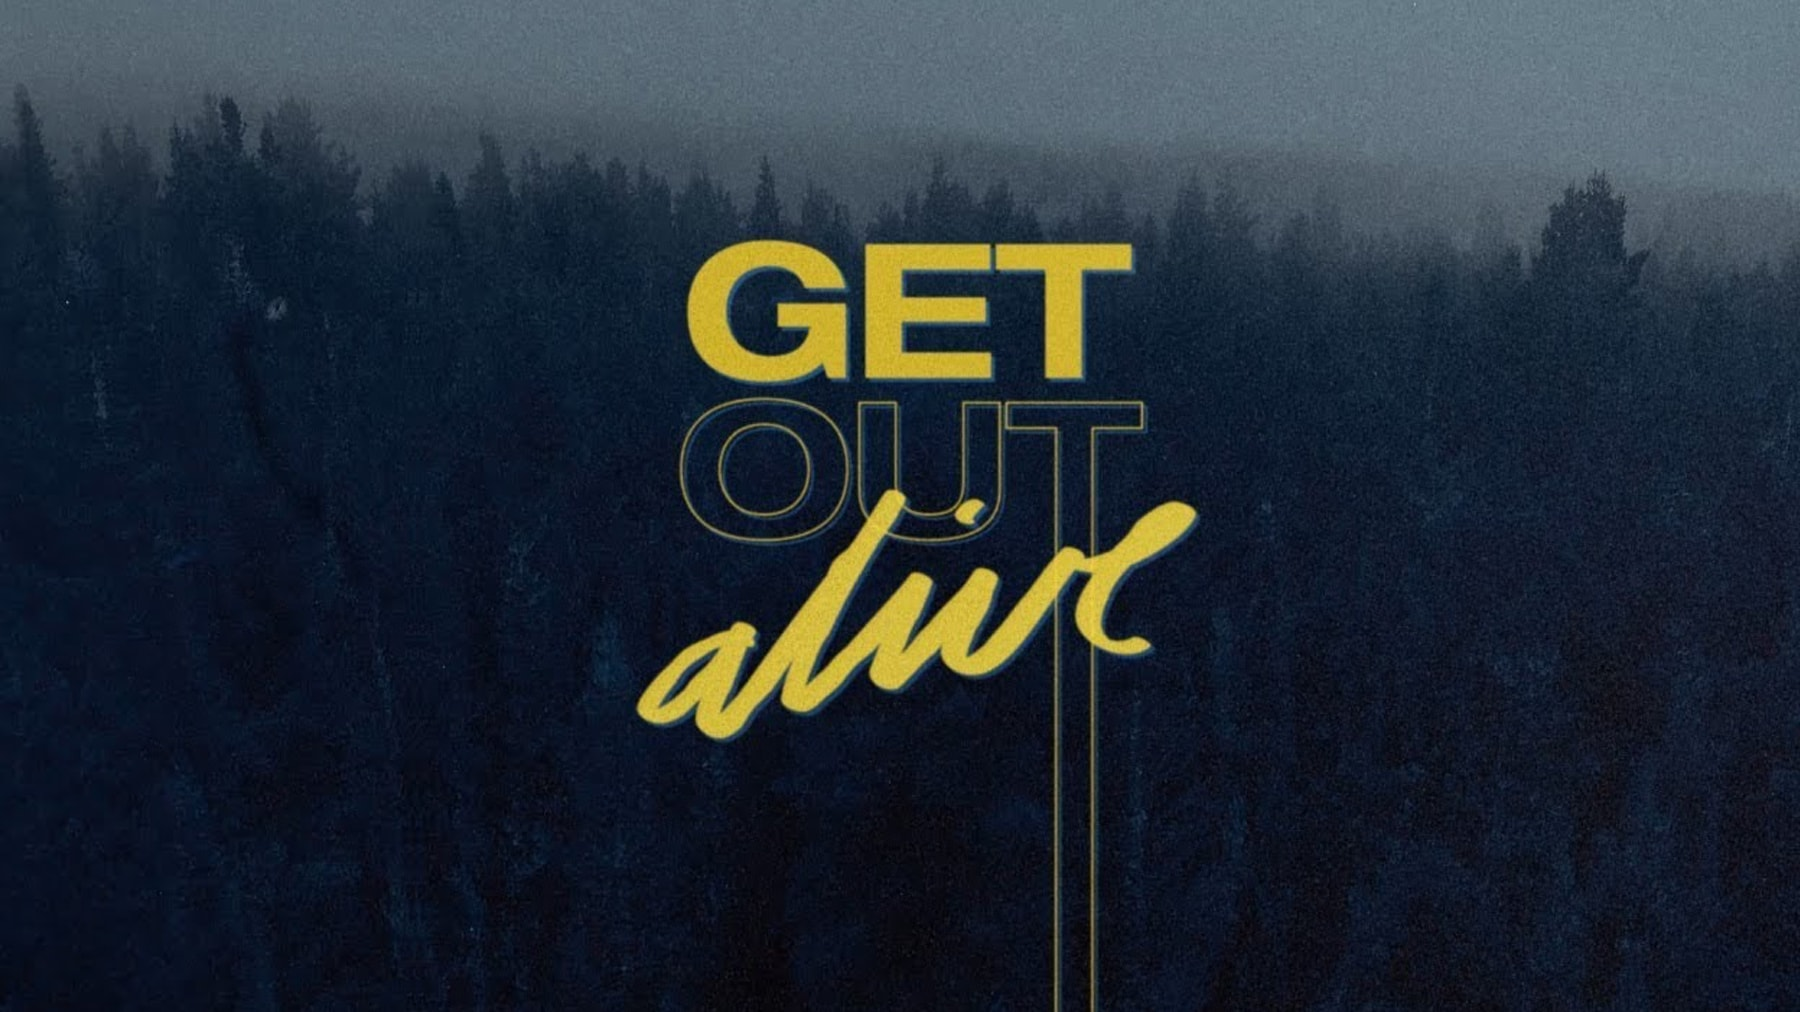 Get out alive video thumbnail